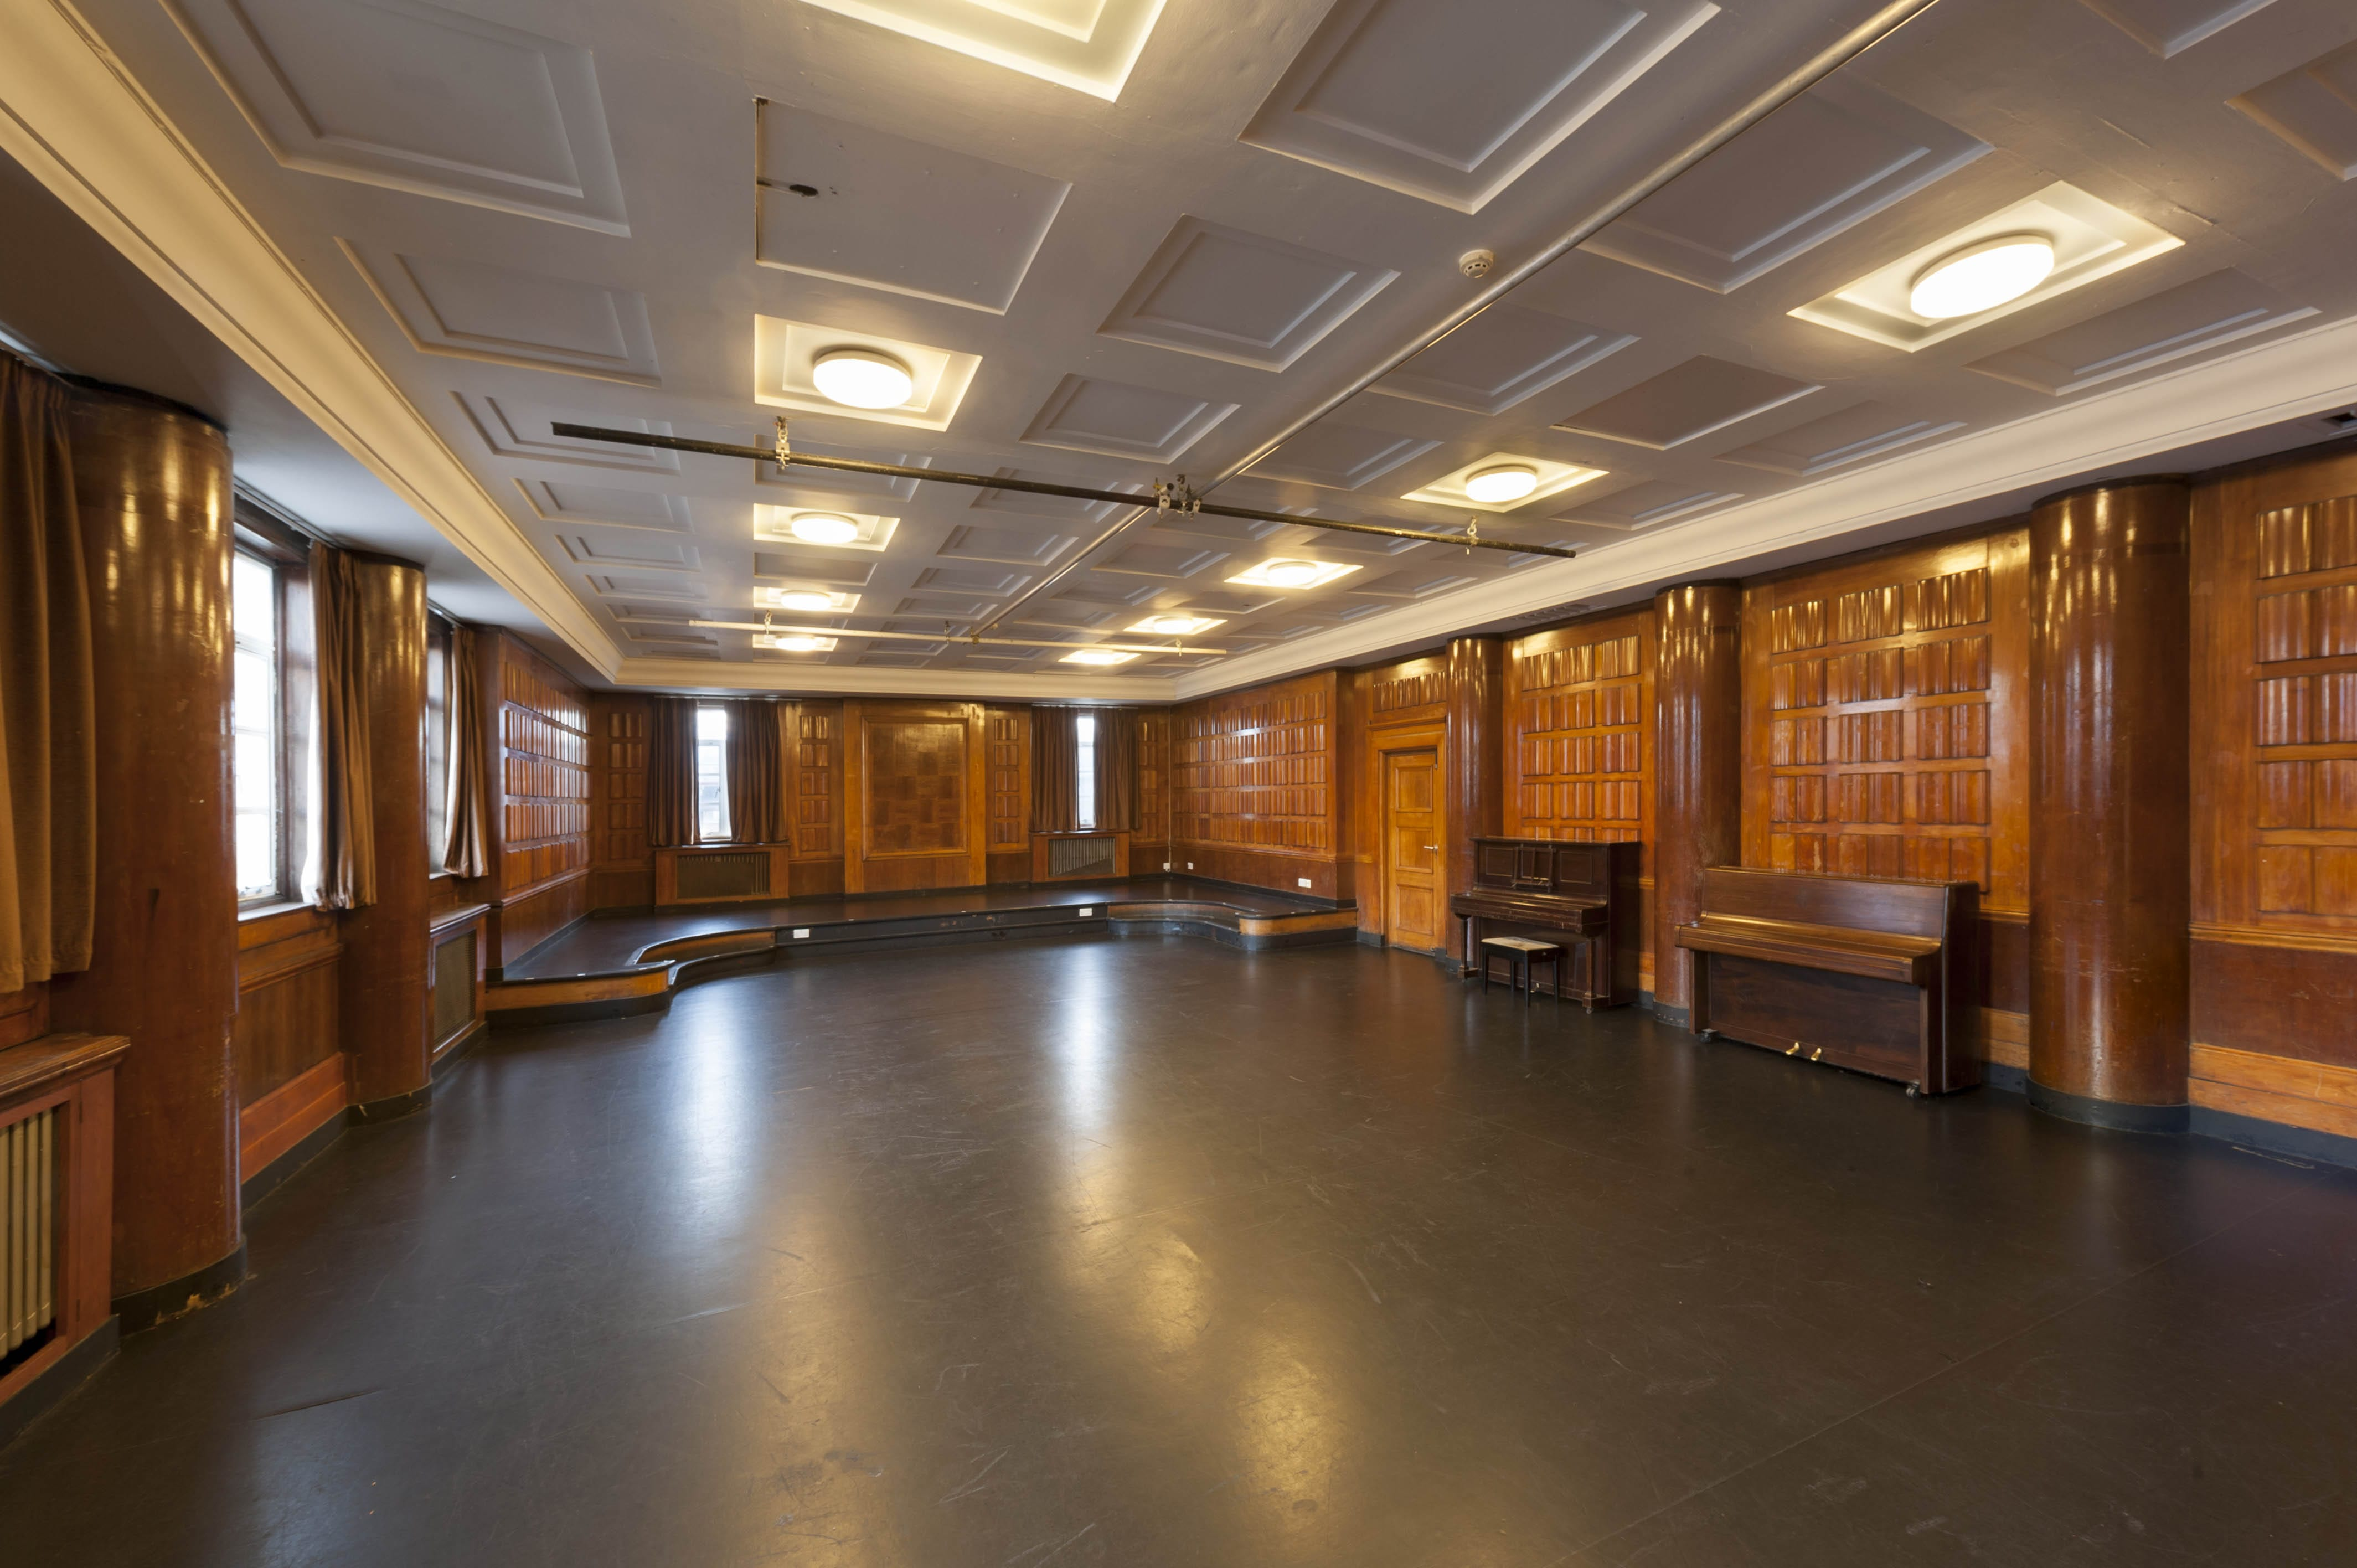 how to make er diagram amazing s musician record online home decorating services The former music room and childrenu0027s court room at Toynbee Theatre.  Photograph by Derek Kendall for the Survey of London, December 2018